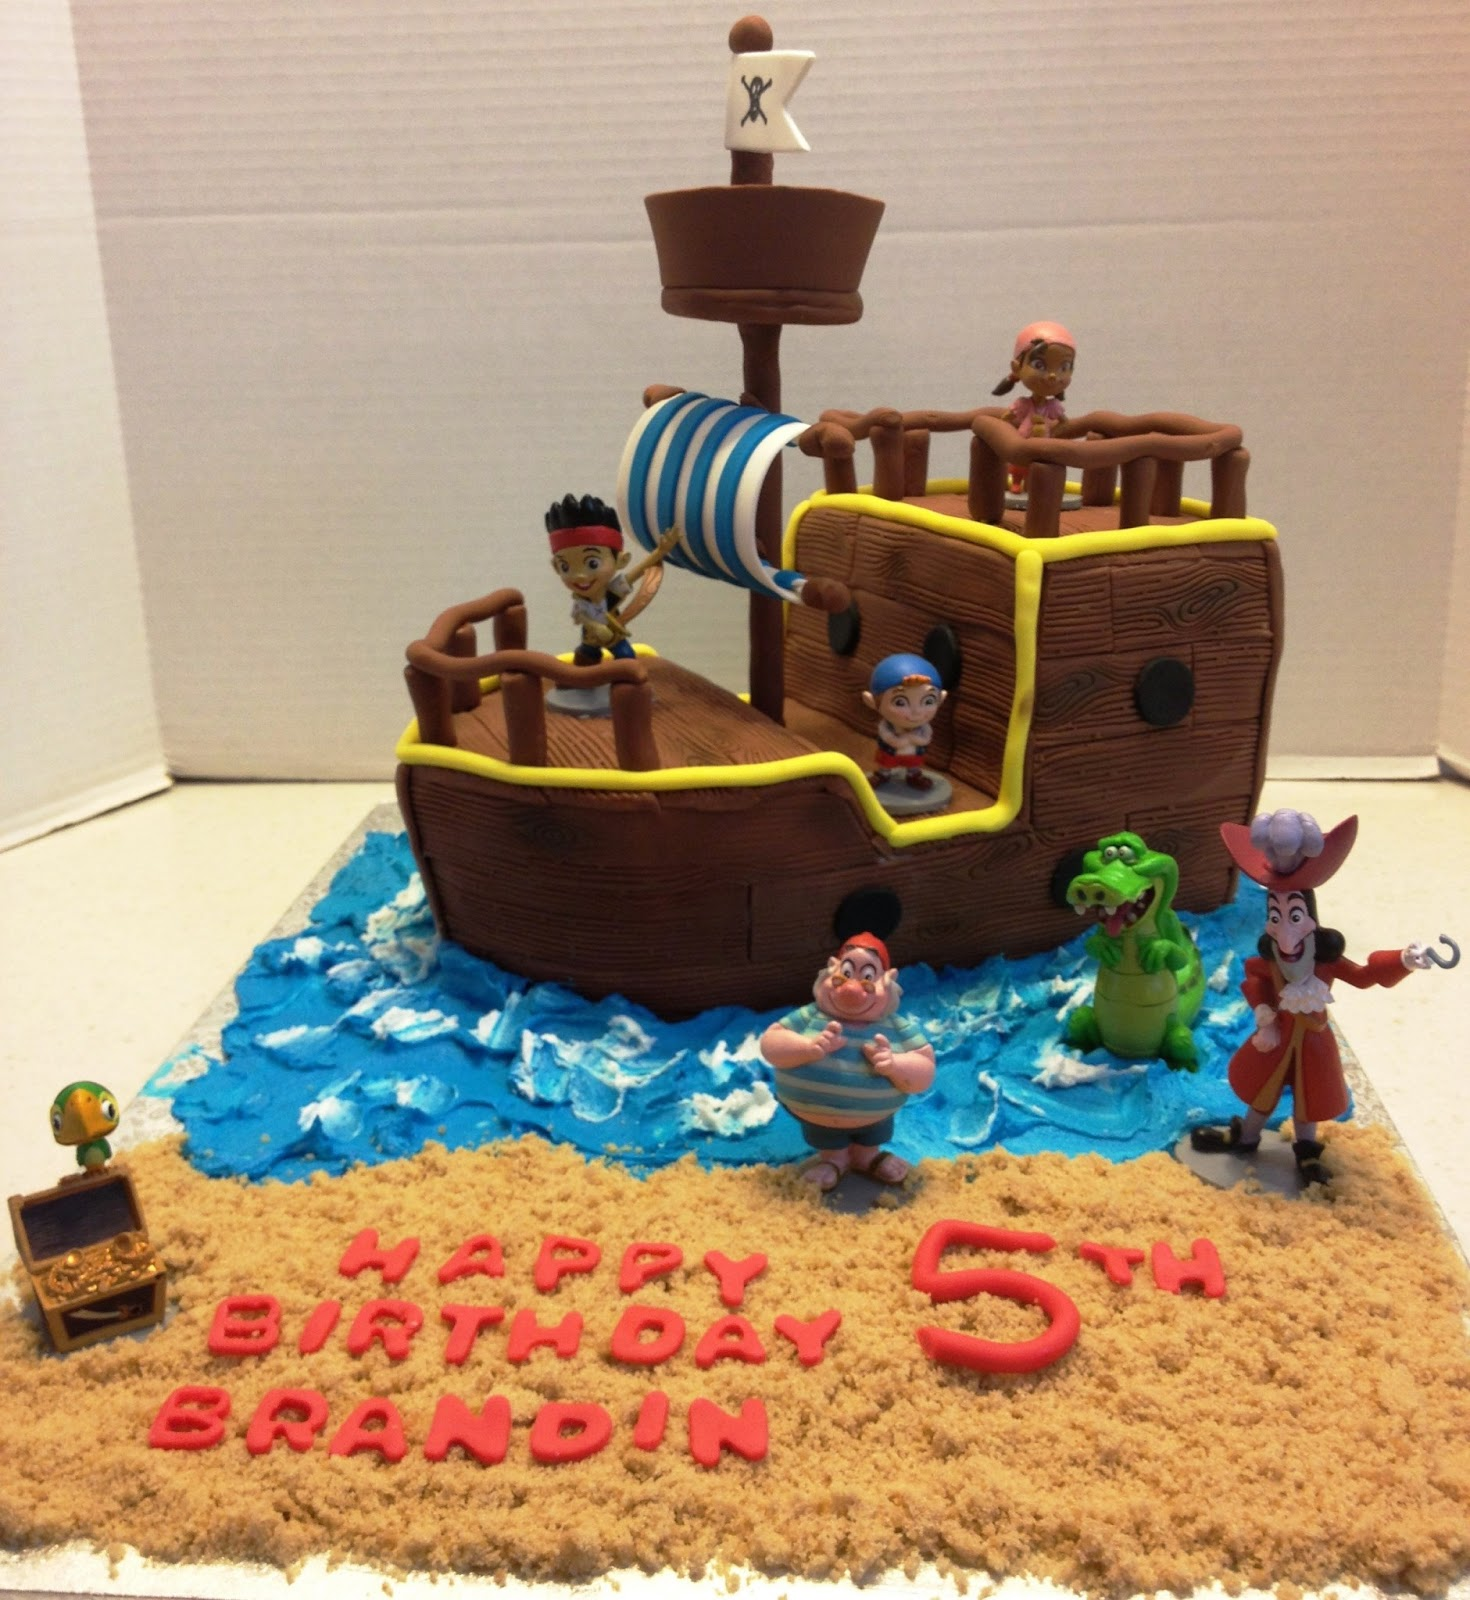 jake and the neverland pirates tiered cake - photo #29